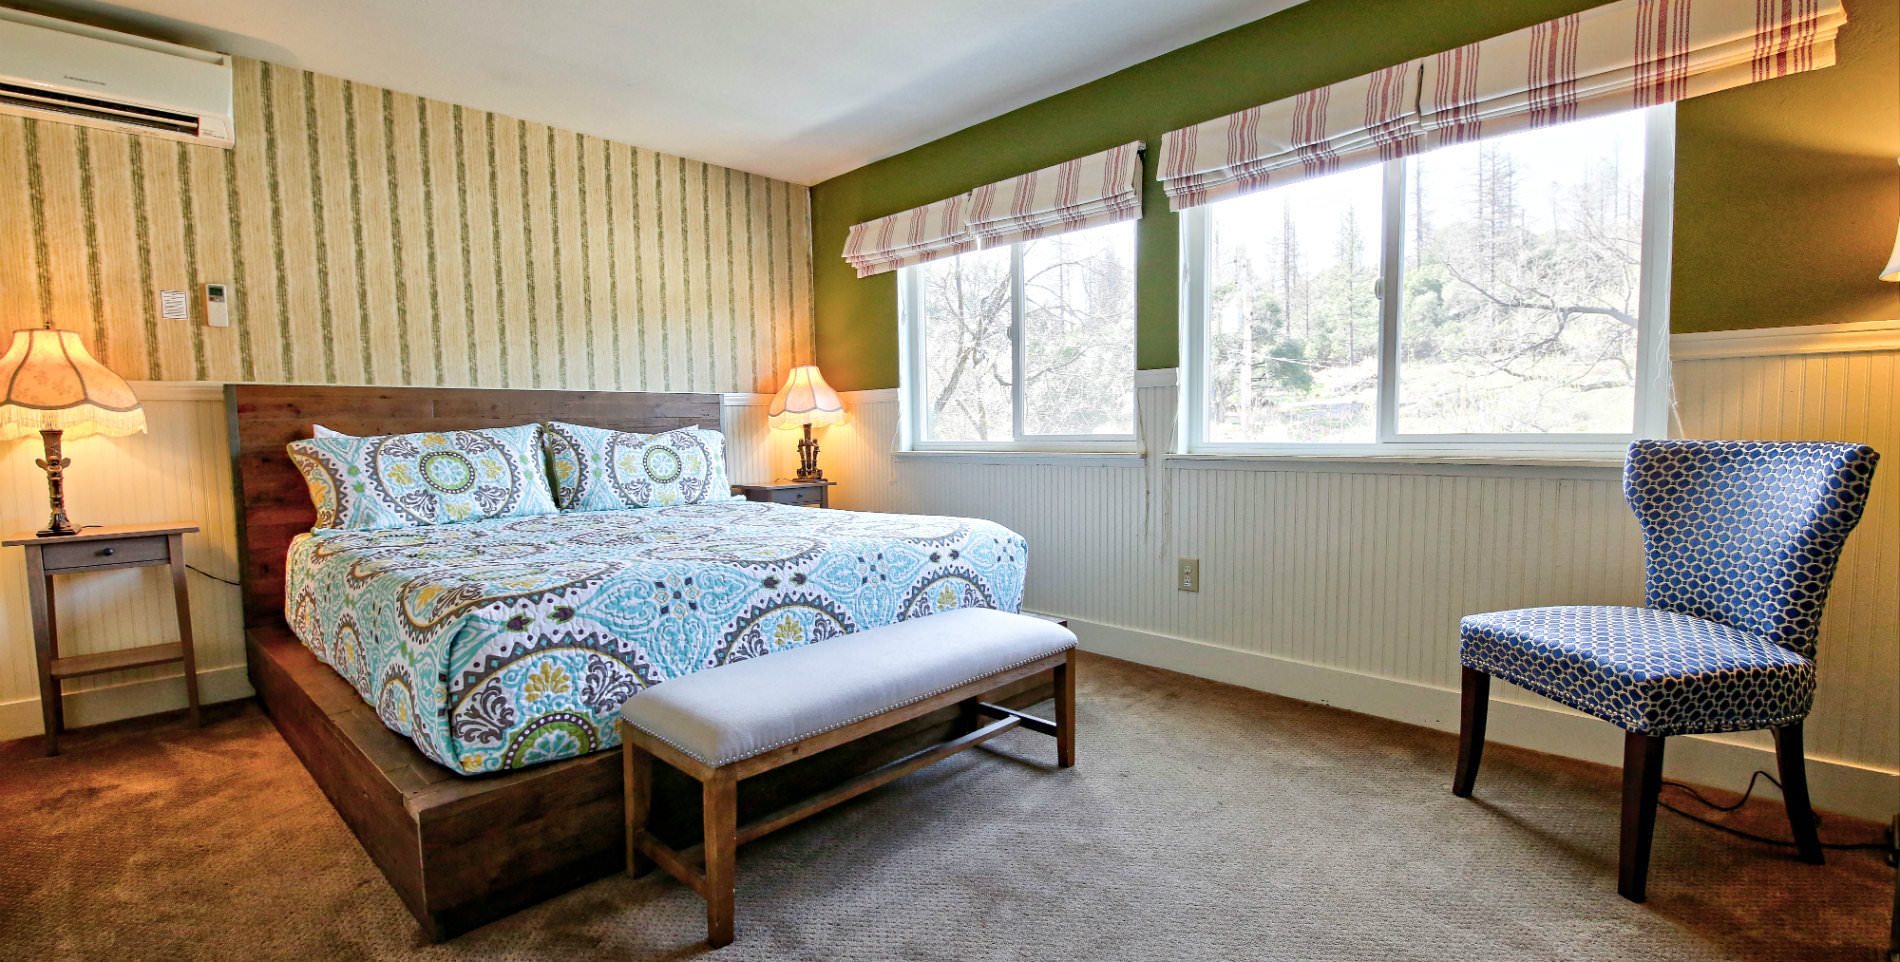 Guest bedroom with soft carpeted floors, turquoise and brown paisley bedding, and two large windows